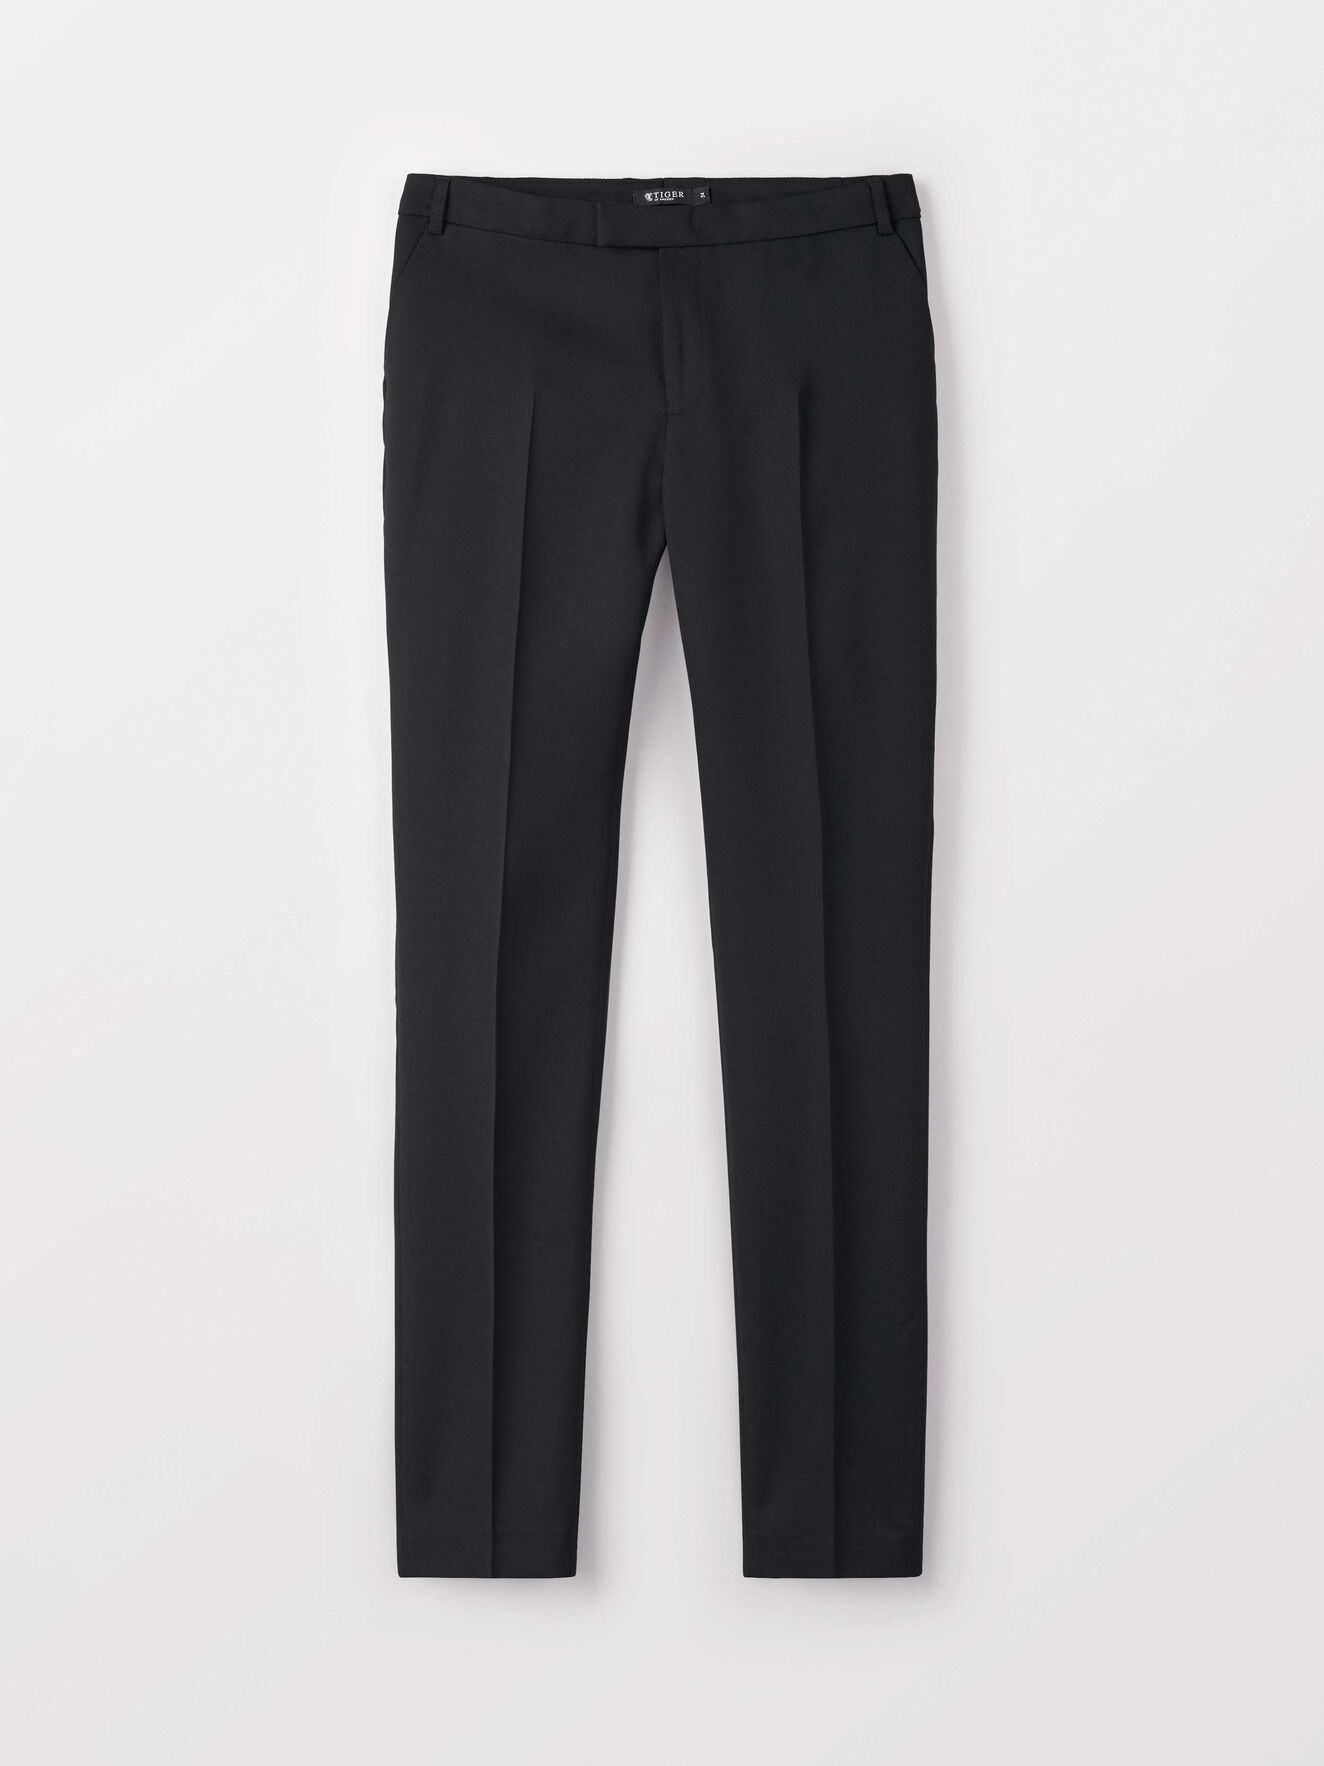 Lovann 5 Trousers in Night Black from Tiger of Sweden